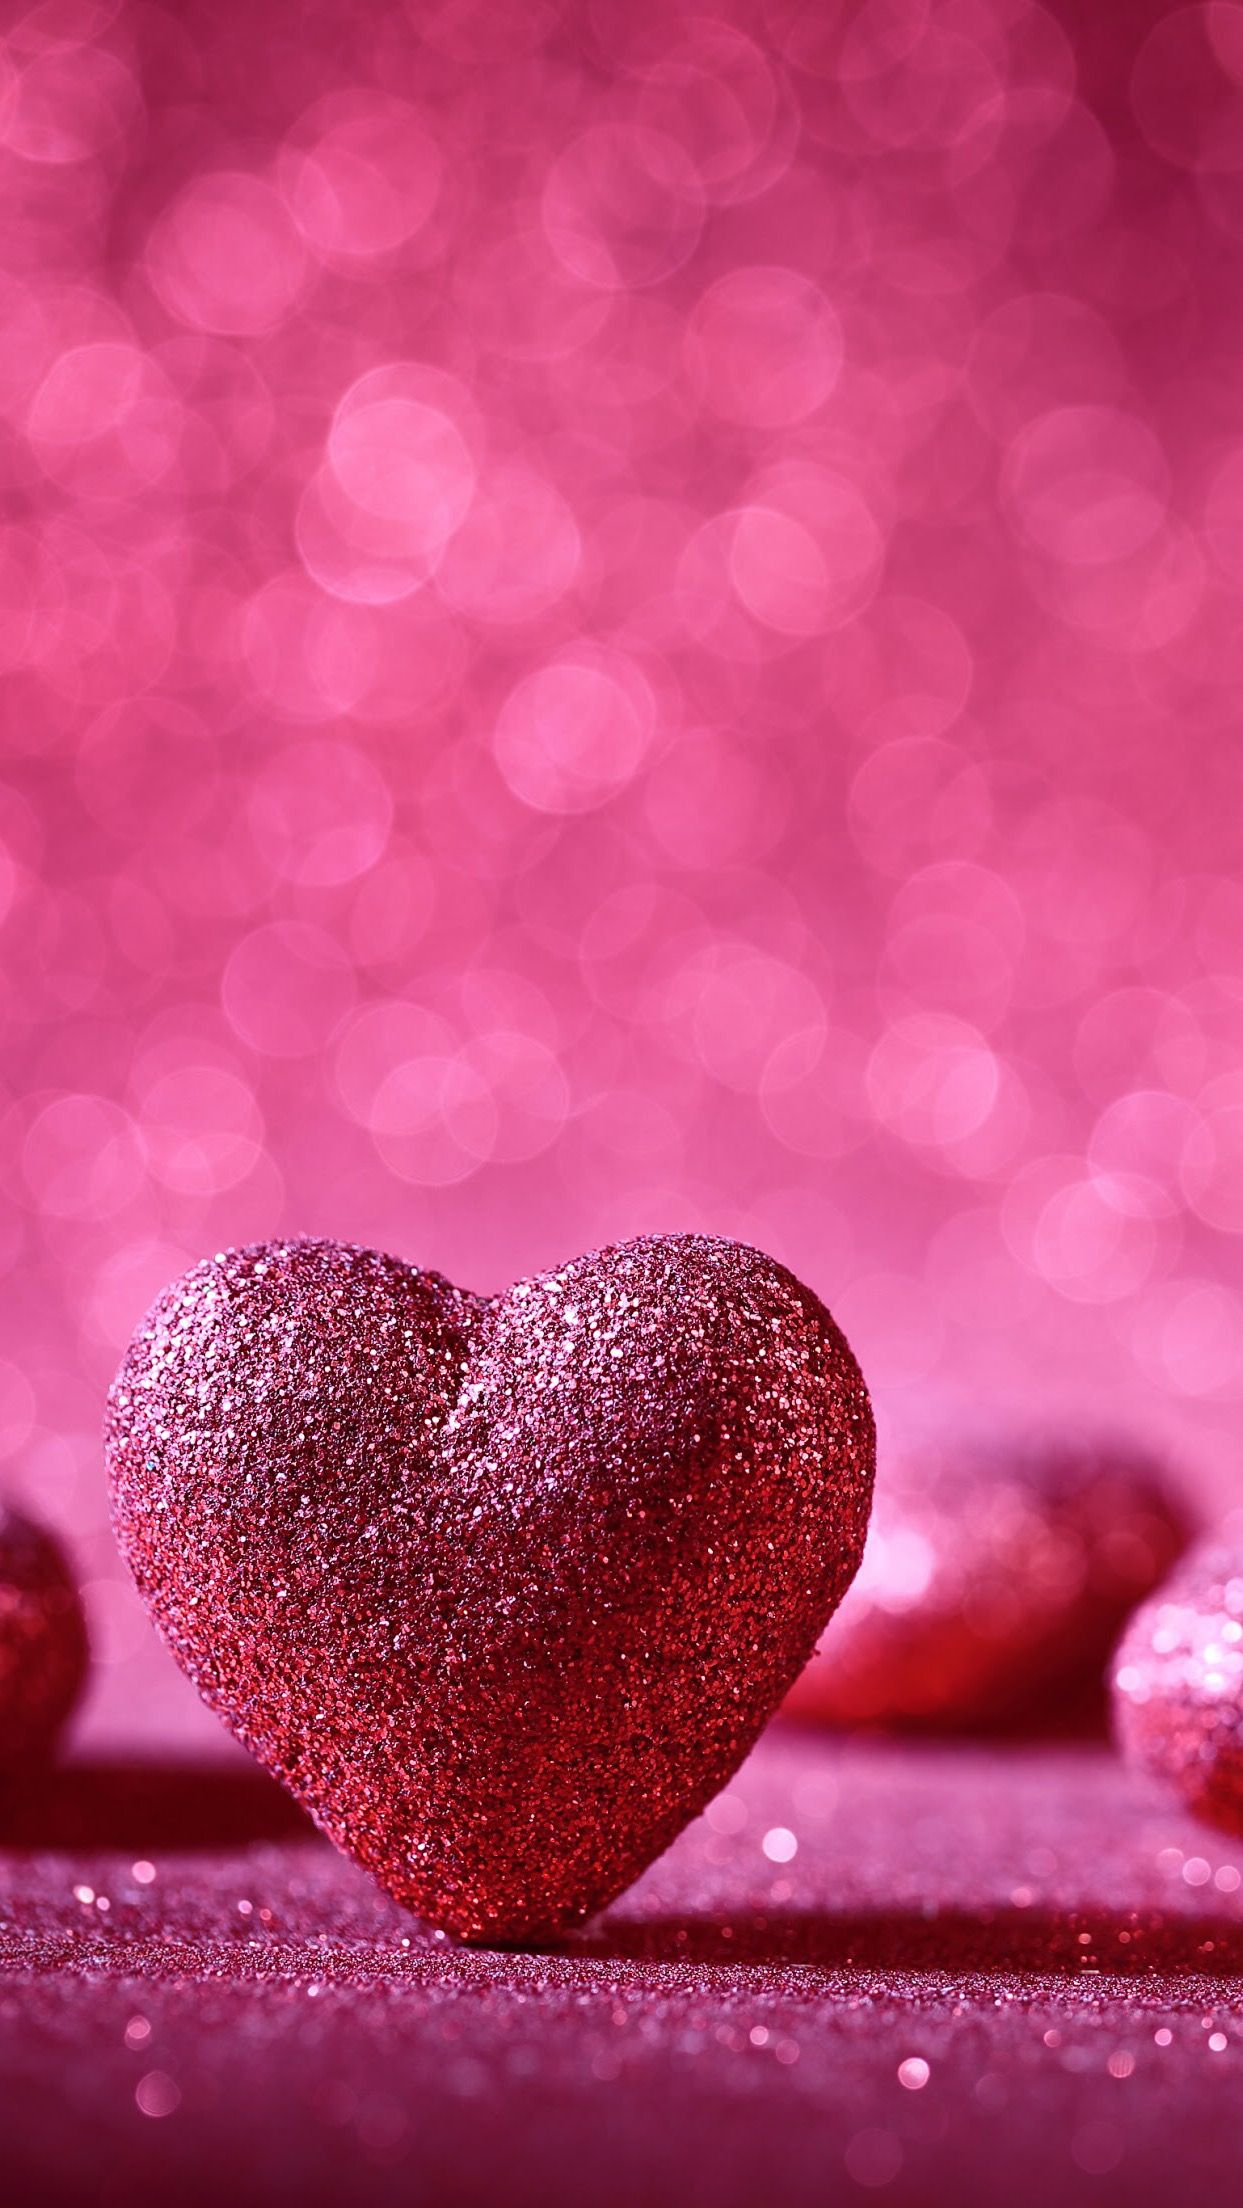 HD mobile wallpaper Glitter Heart Cell Phone Wallpapers in 2019 1243x2208